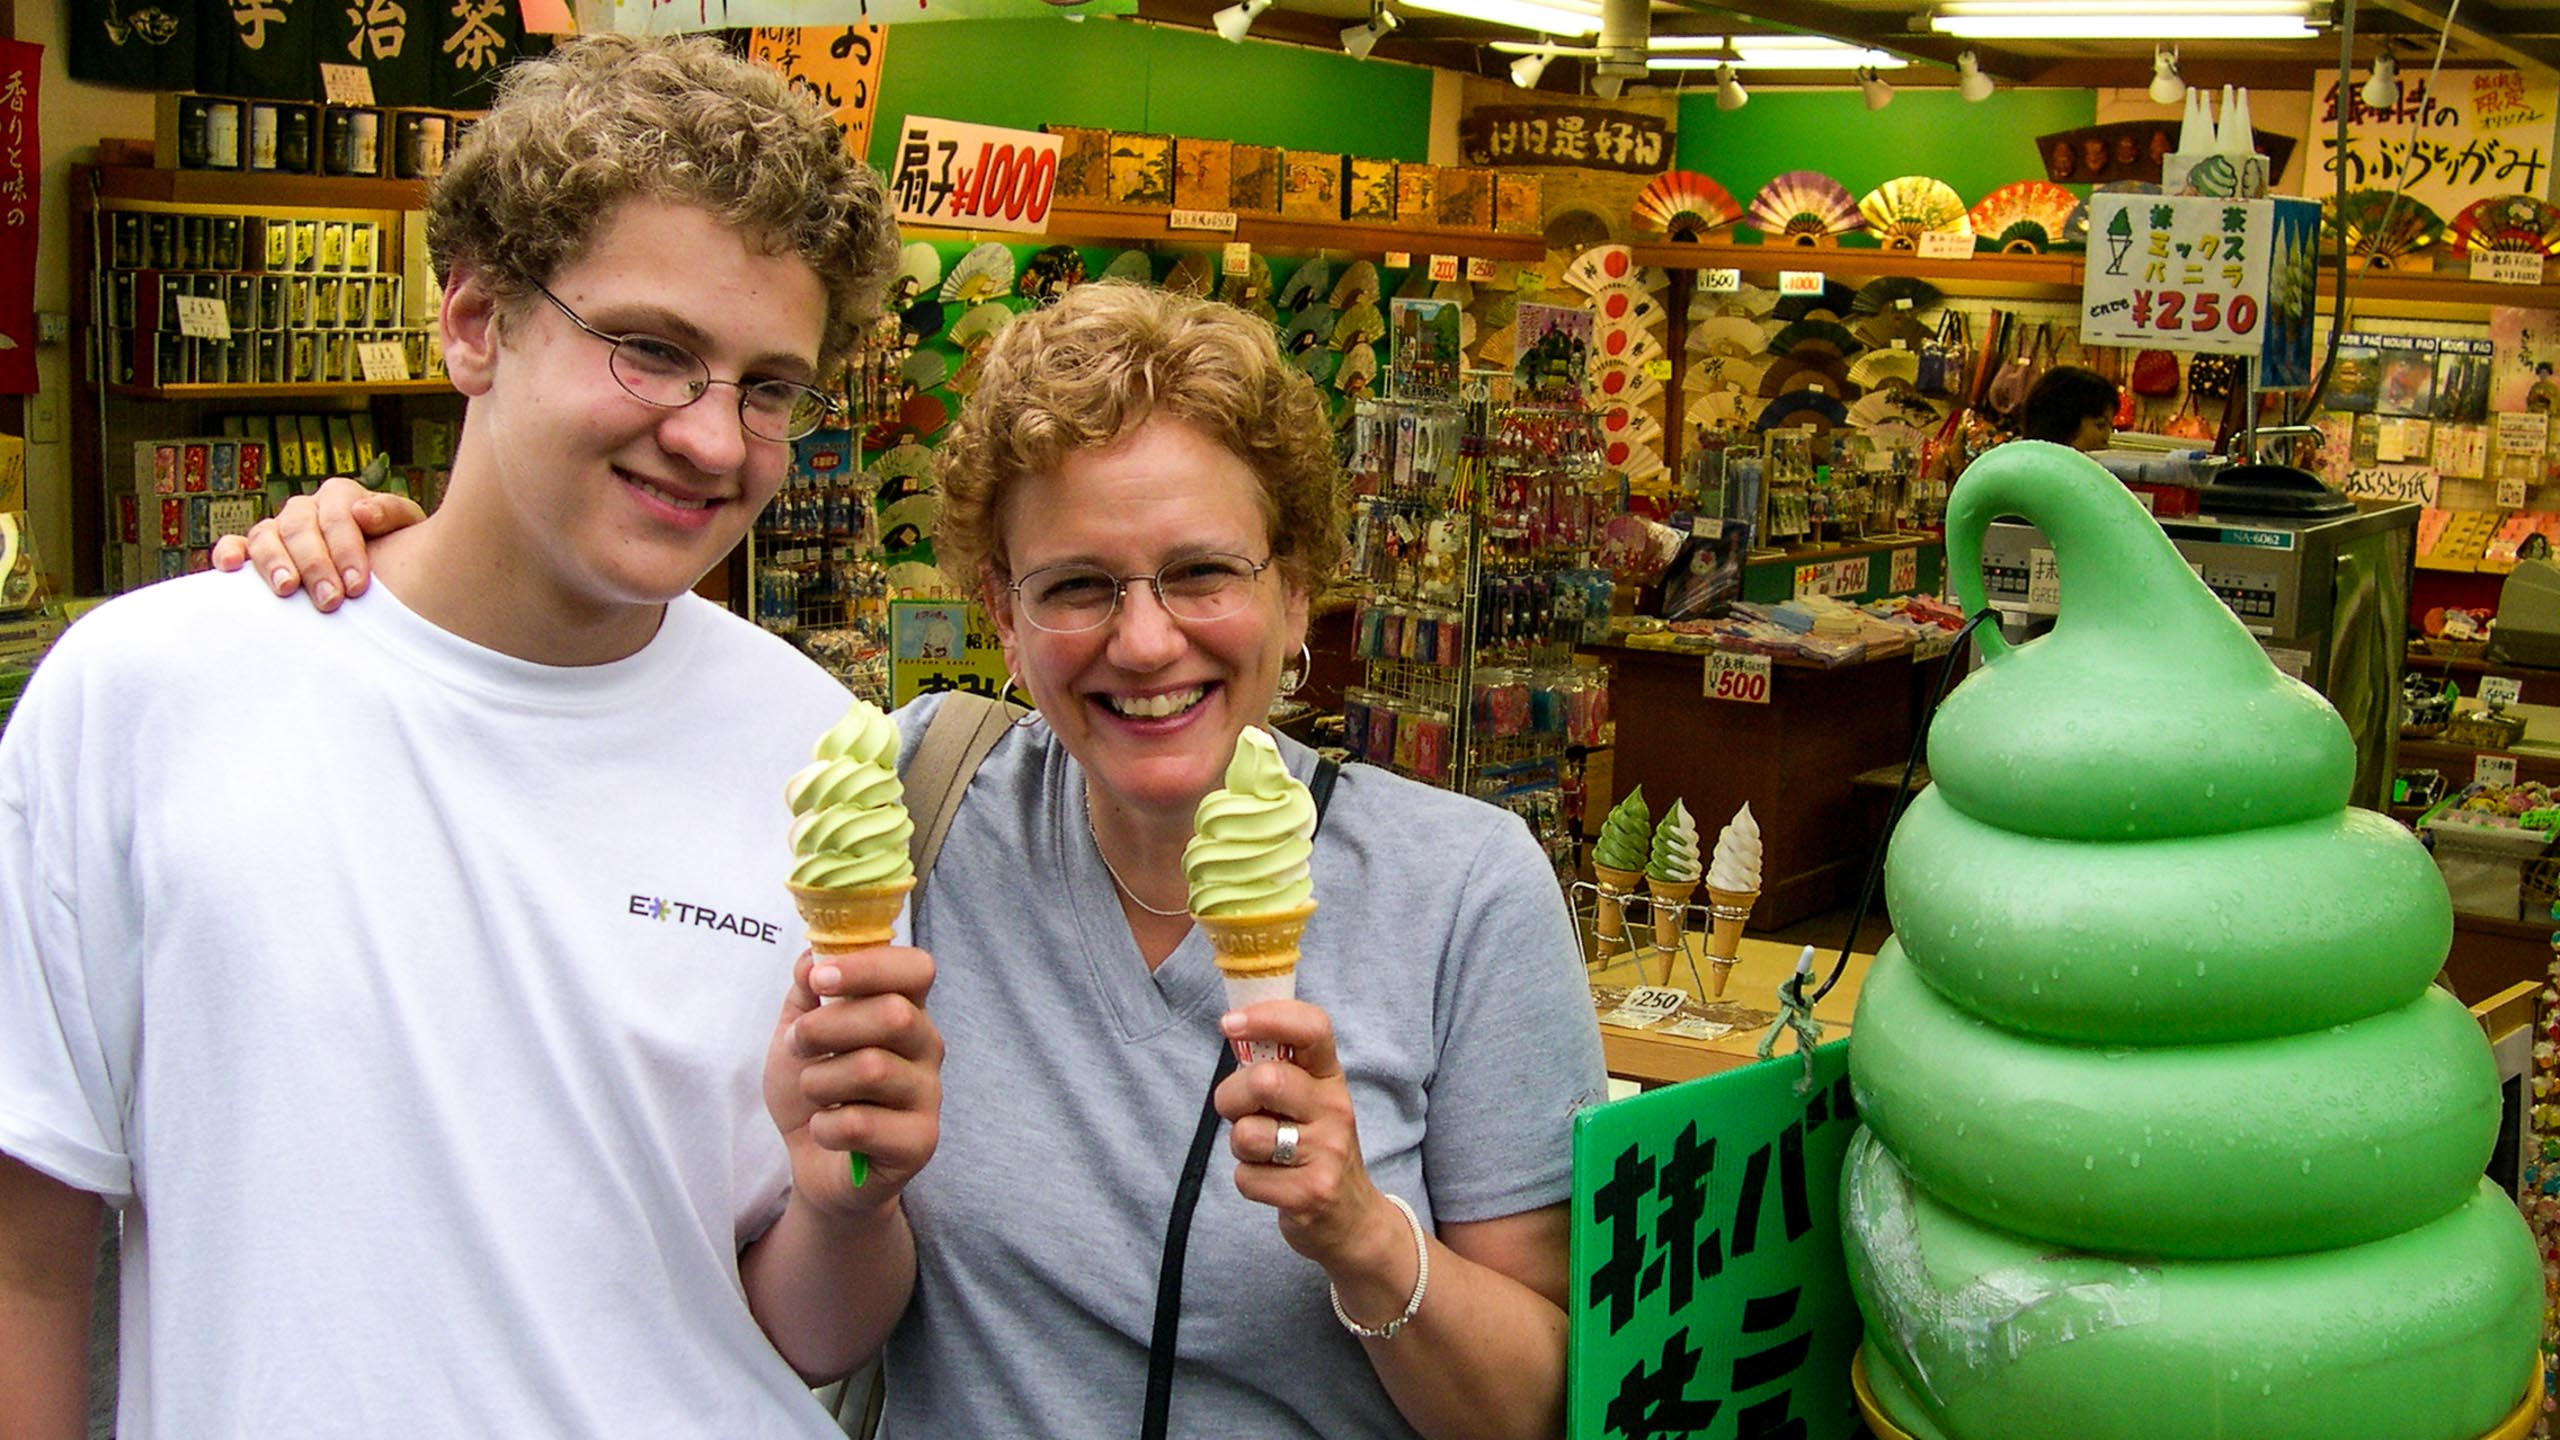 Teen boy and older woman hold ice cream cones